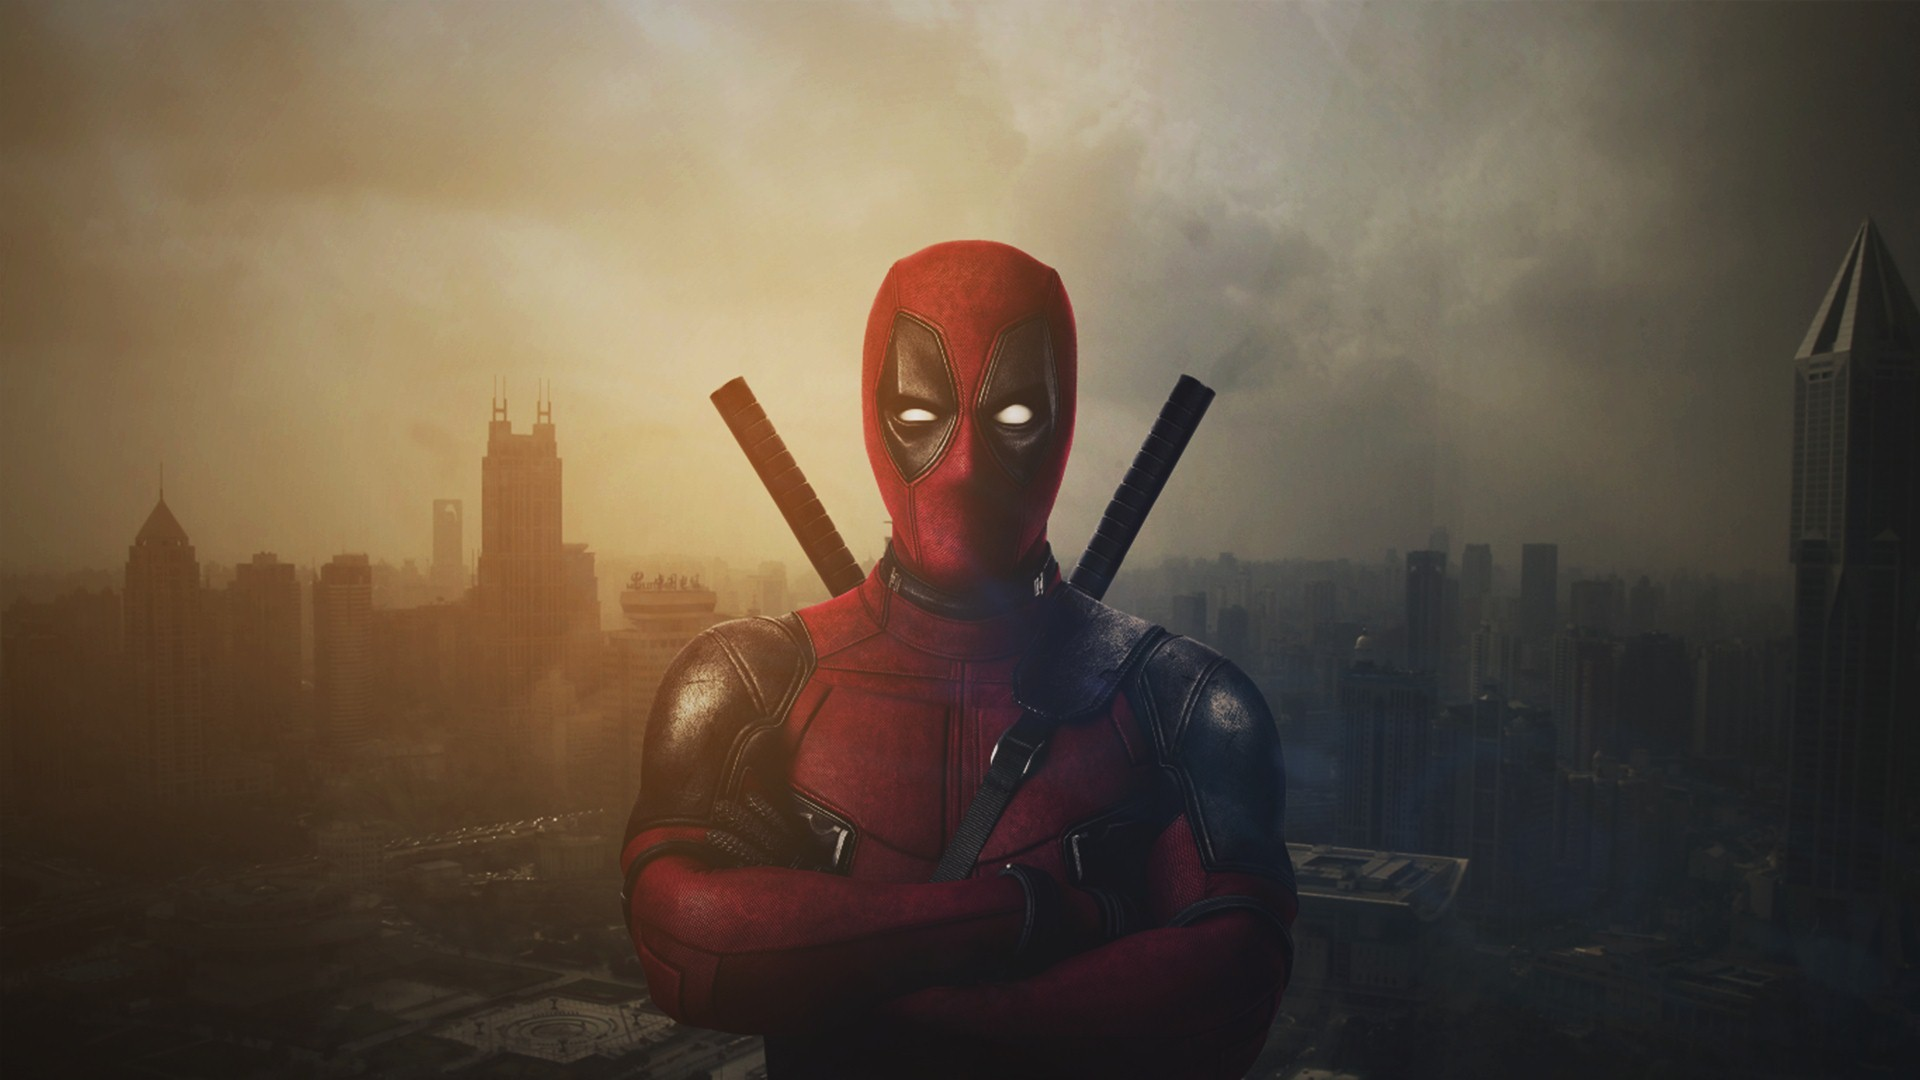 deadpool wallpaper 40 wallpapers � adorable wallpapers